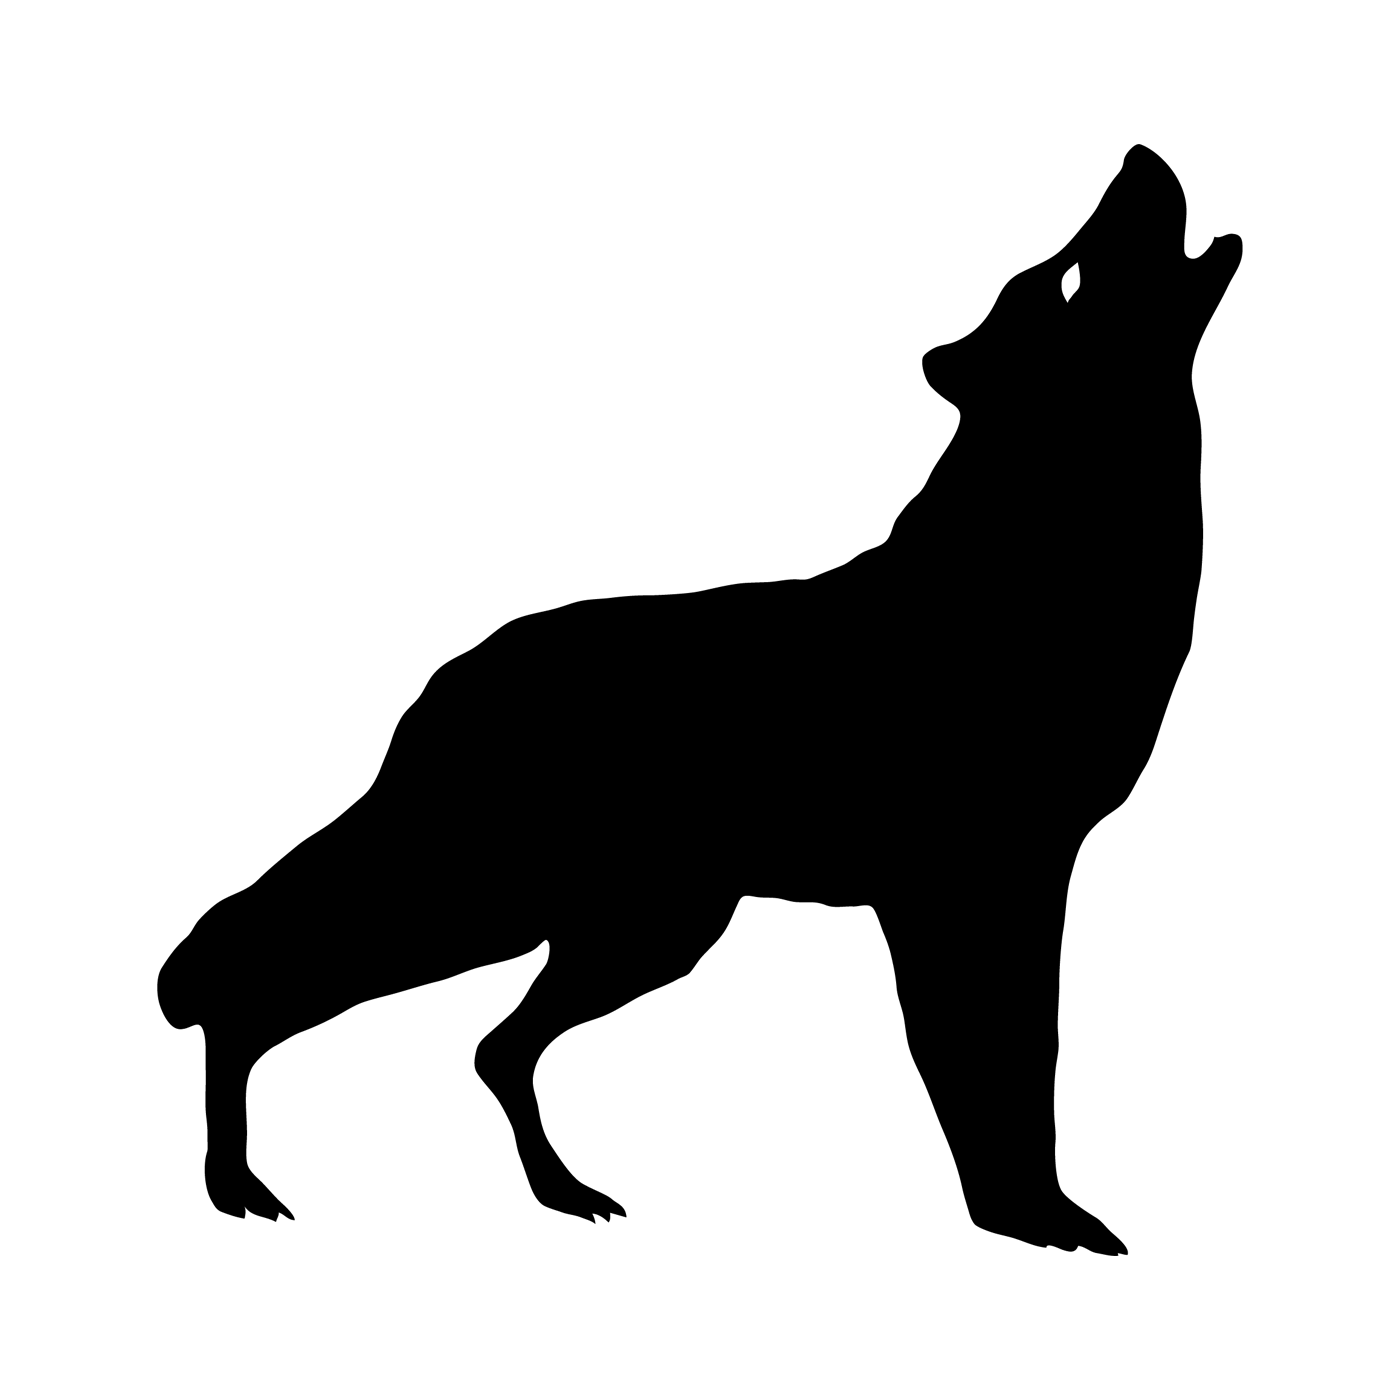 1400x1400 Howling Wolf Silhouette